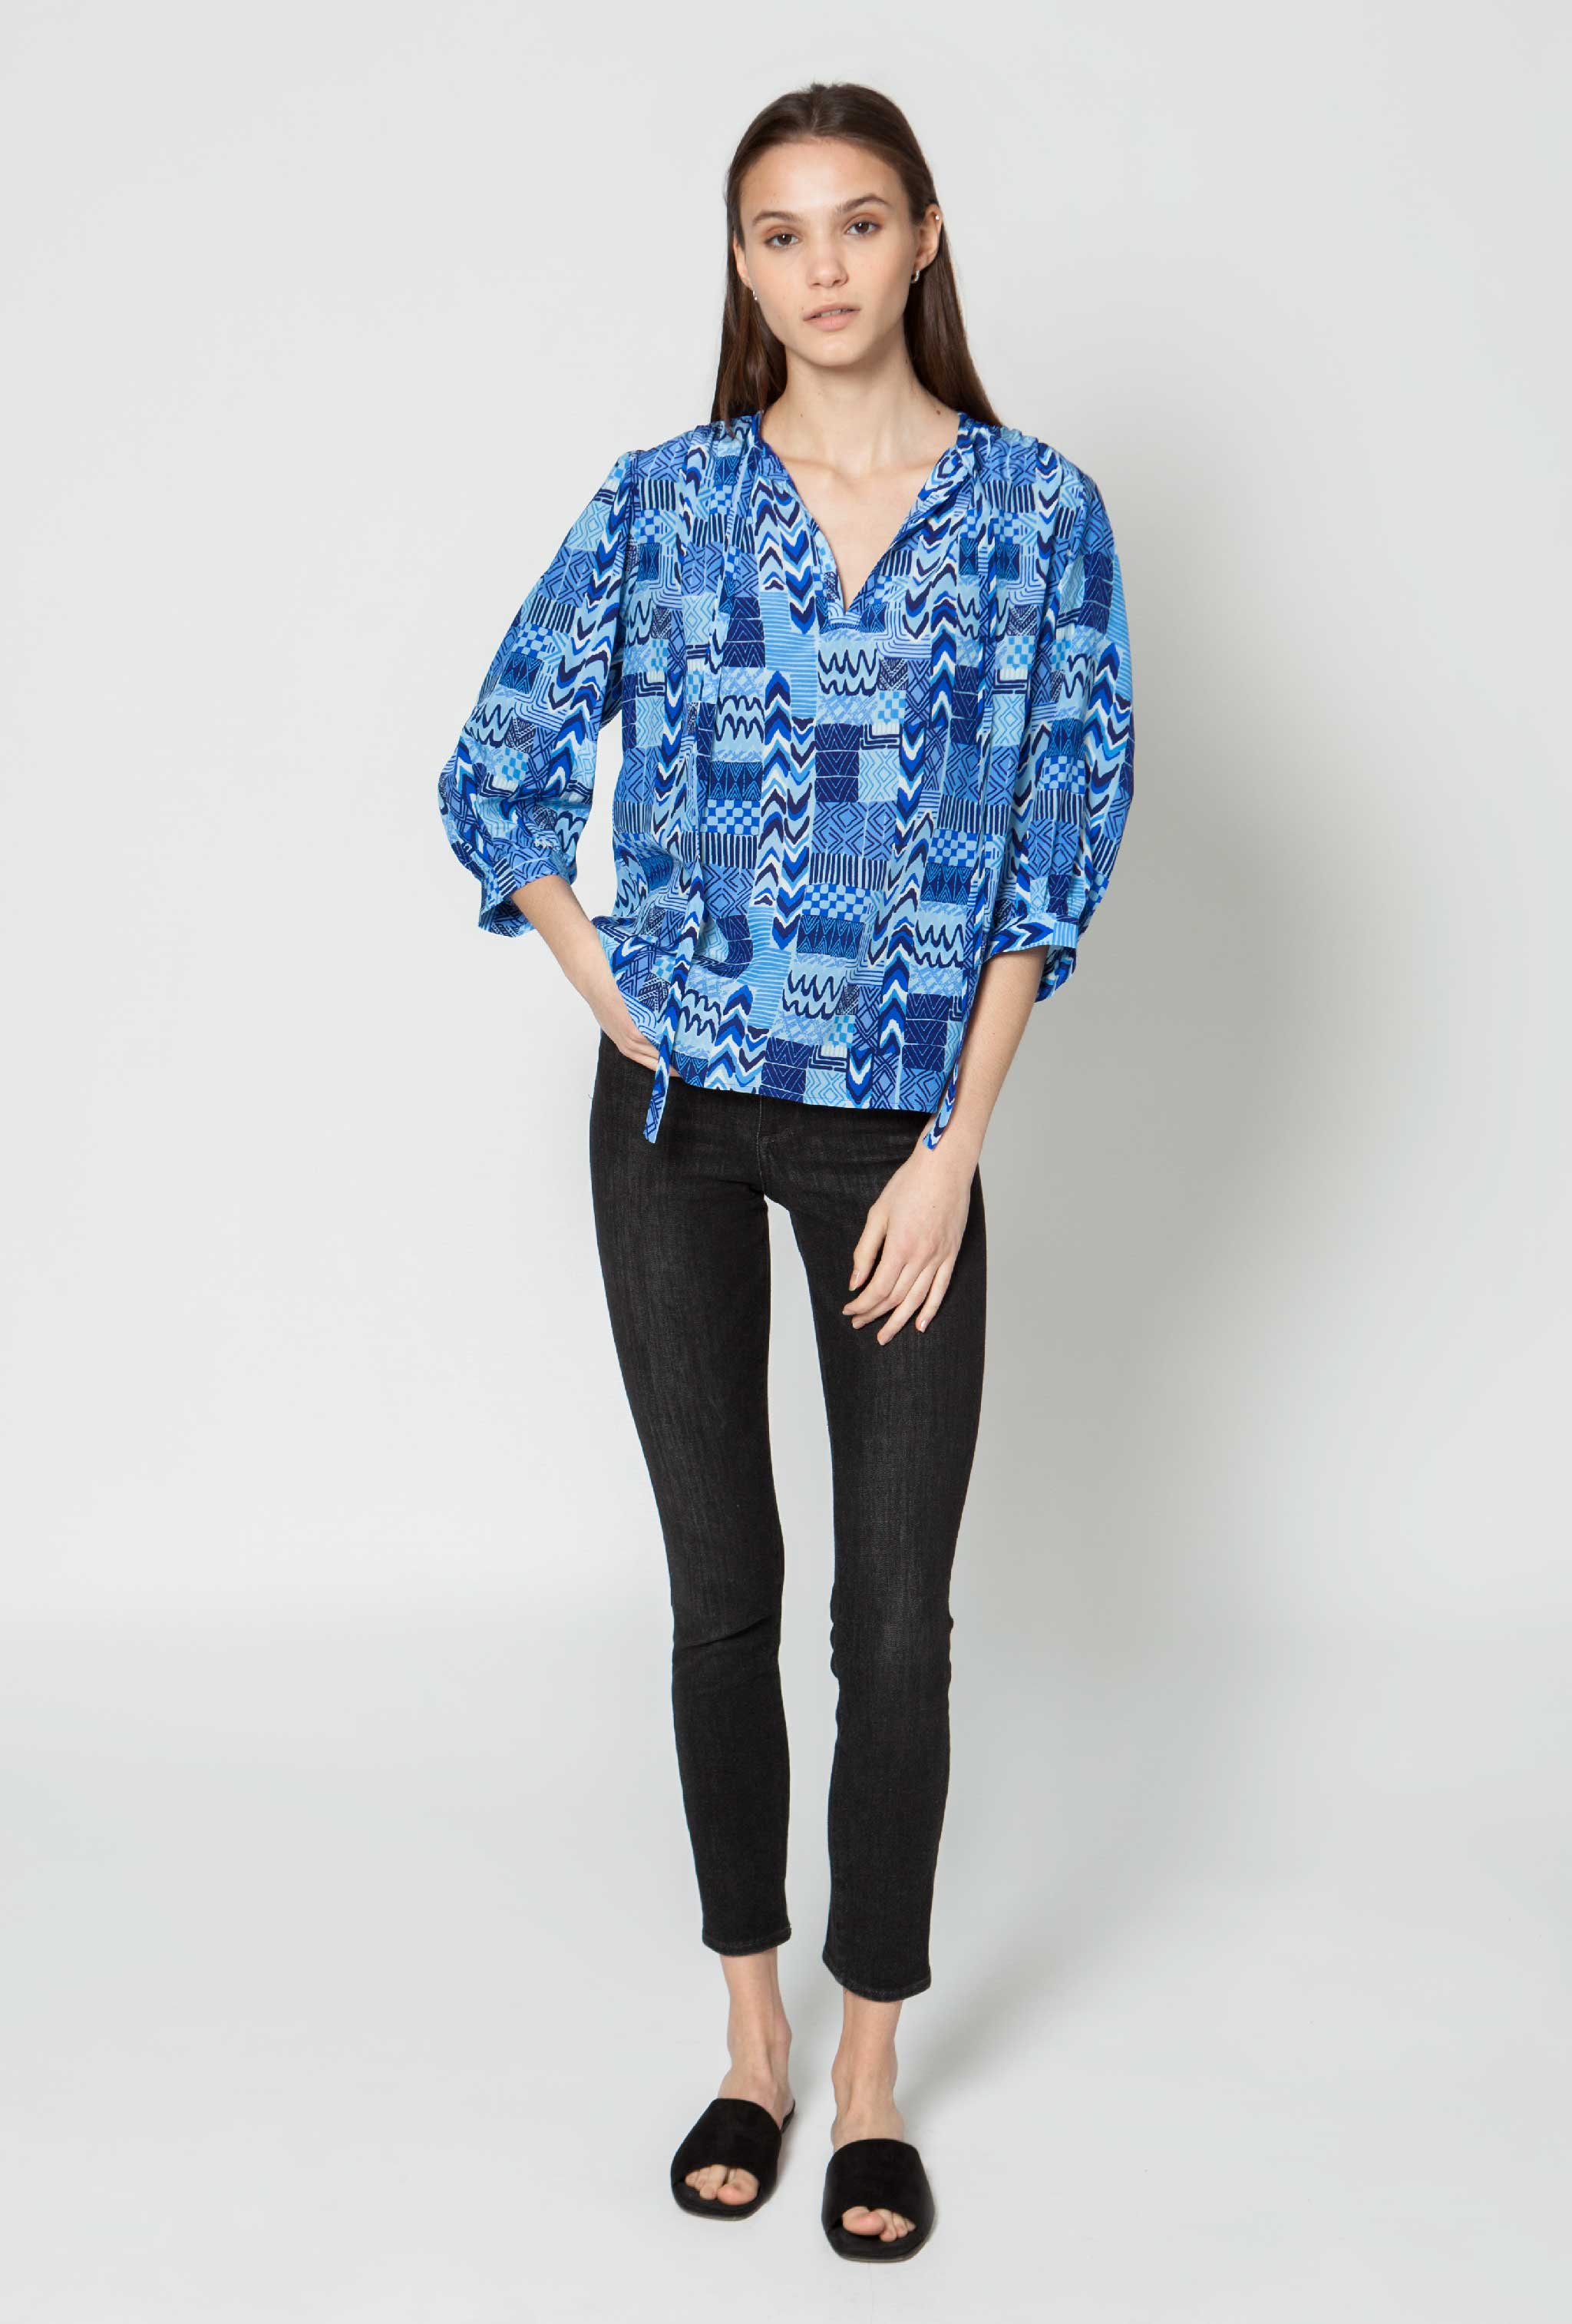 The Tassel Blouse | Aqua Wave